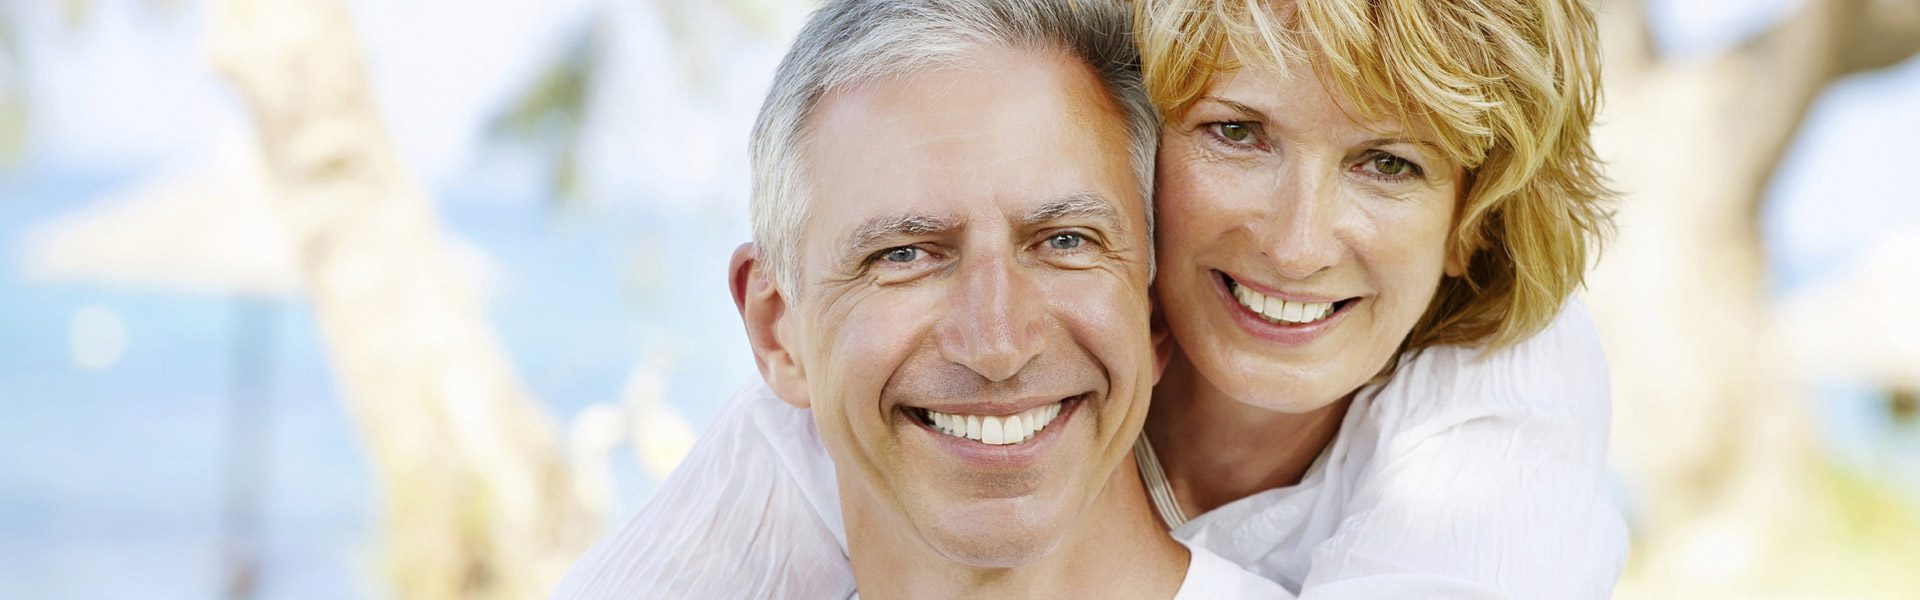 All About Your Dental Implant Restorations